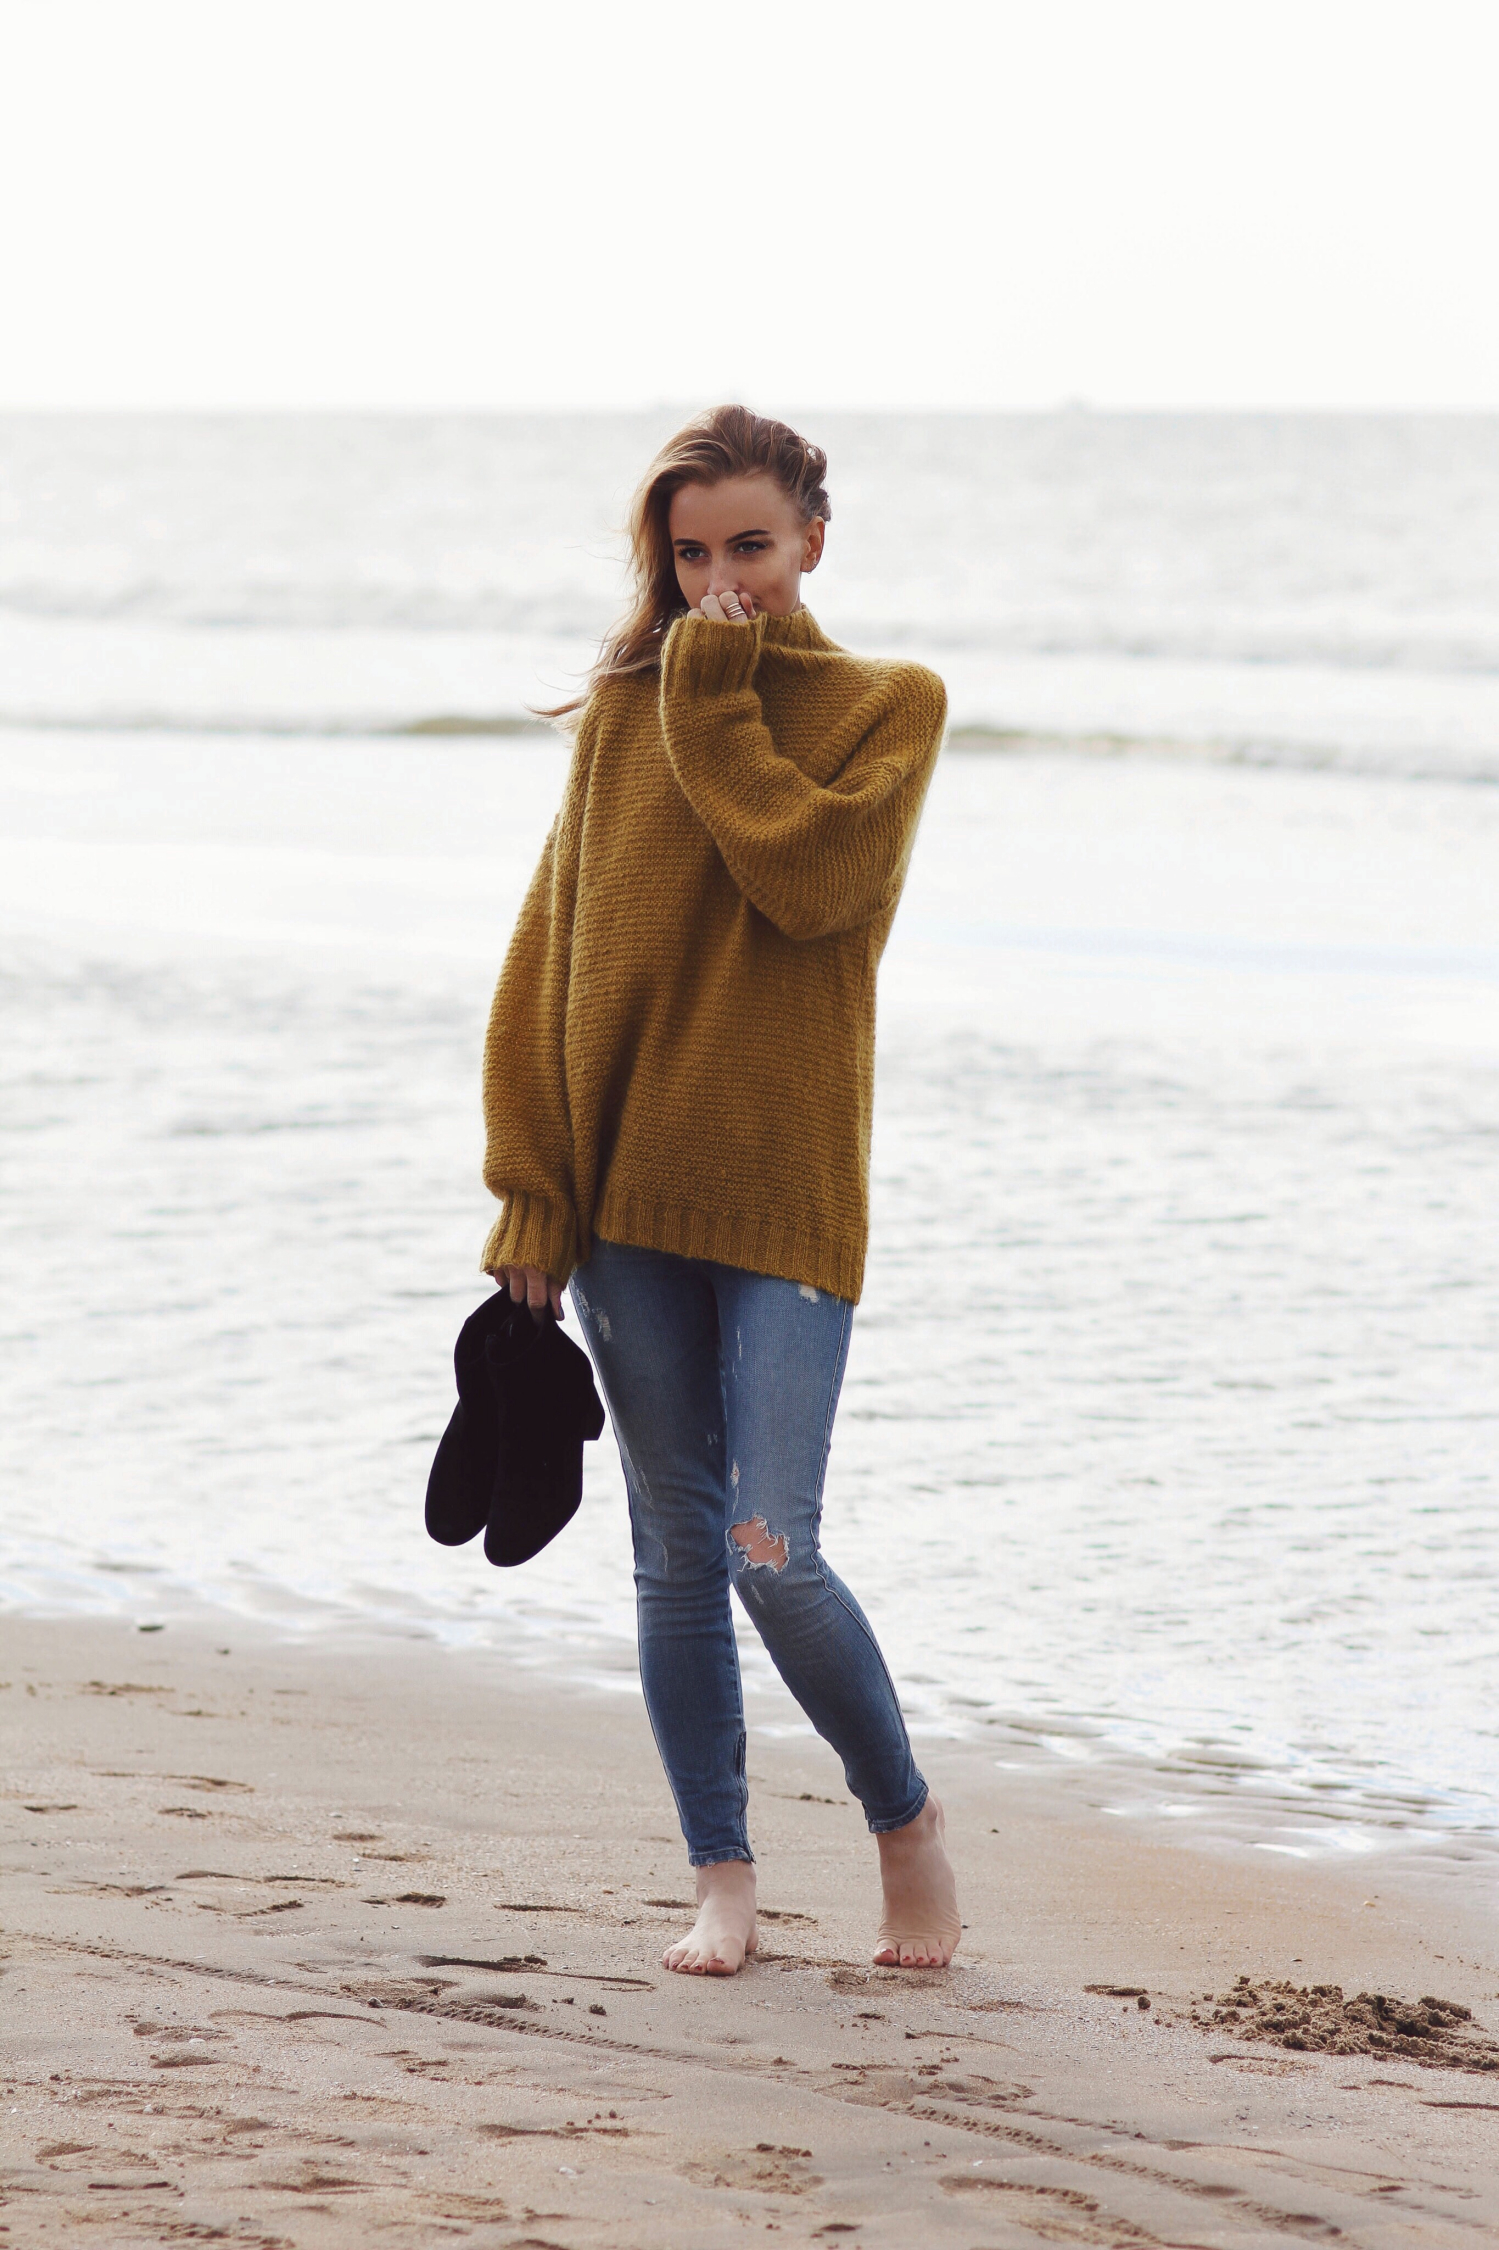 Noor De Groot wears a cute mustard knit and ripped denim jeans. Sweater: Baum und Pferdgarten, Jeans: Ksubi, Booties: Sam Edelman.